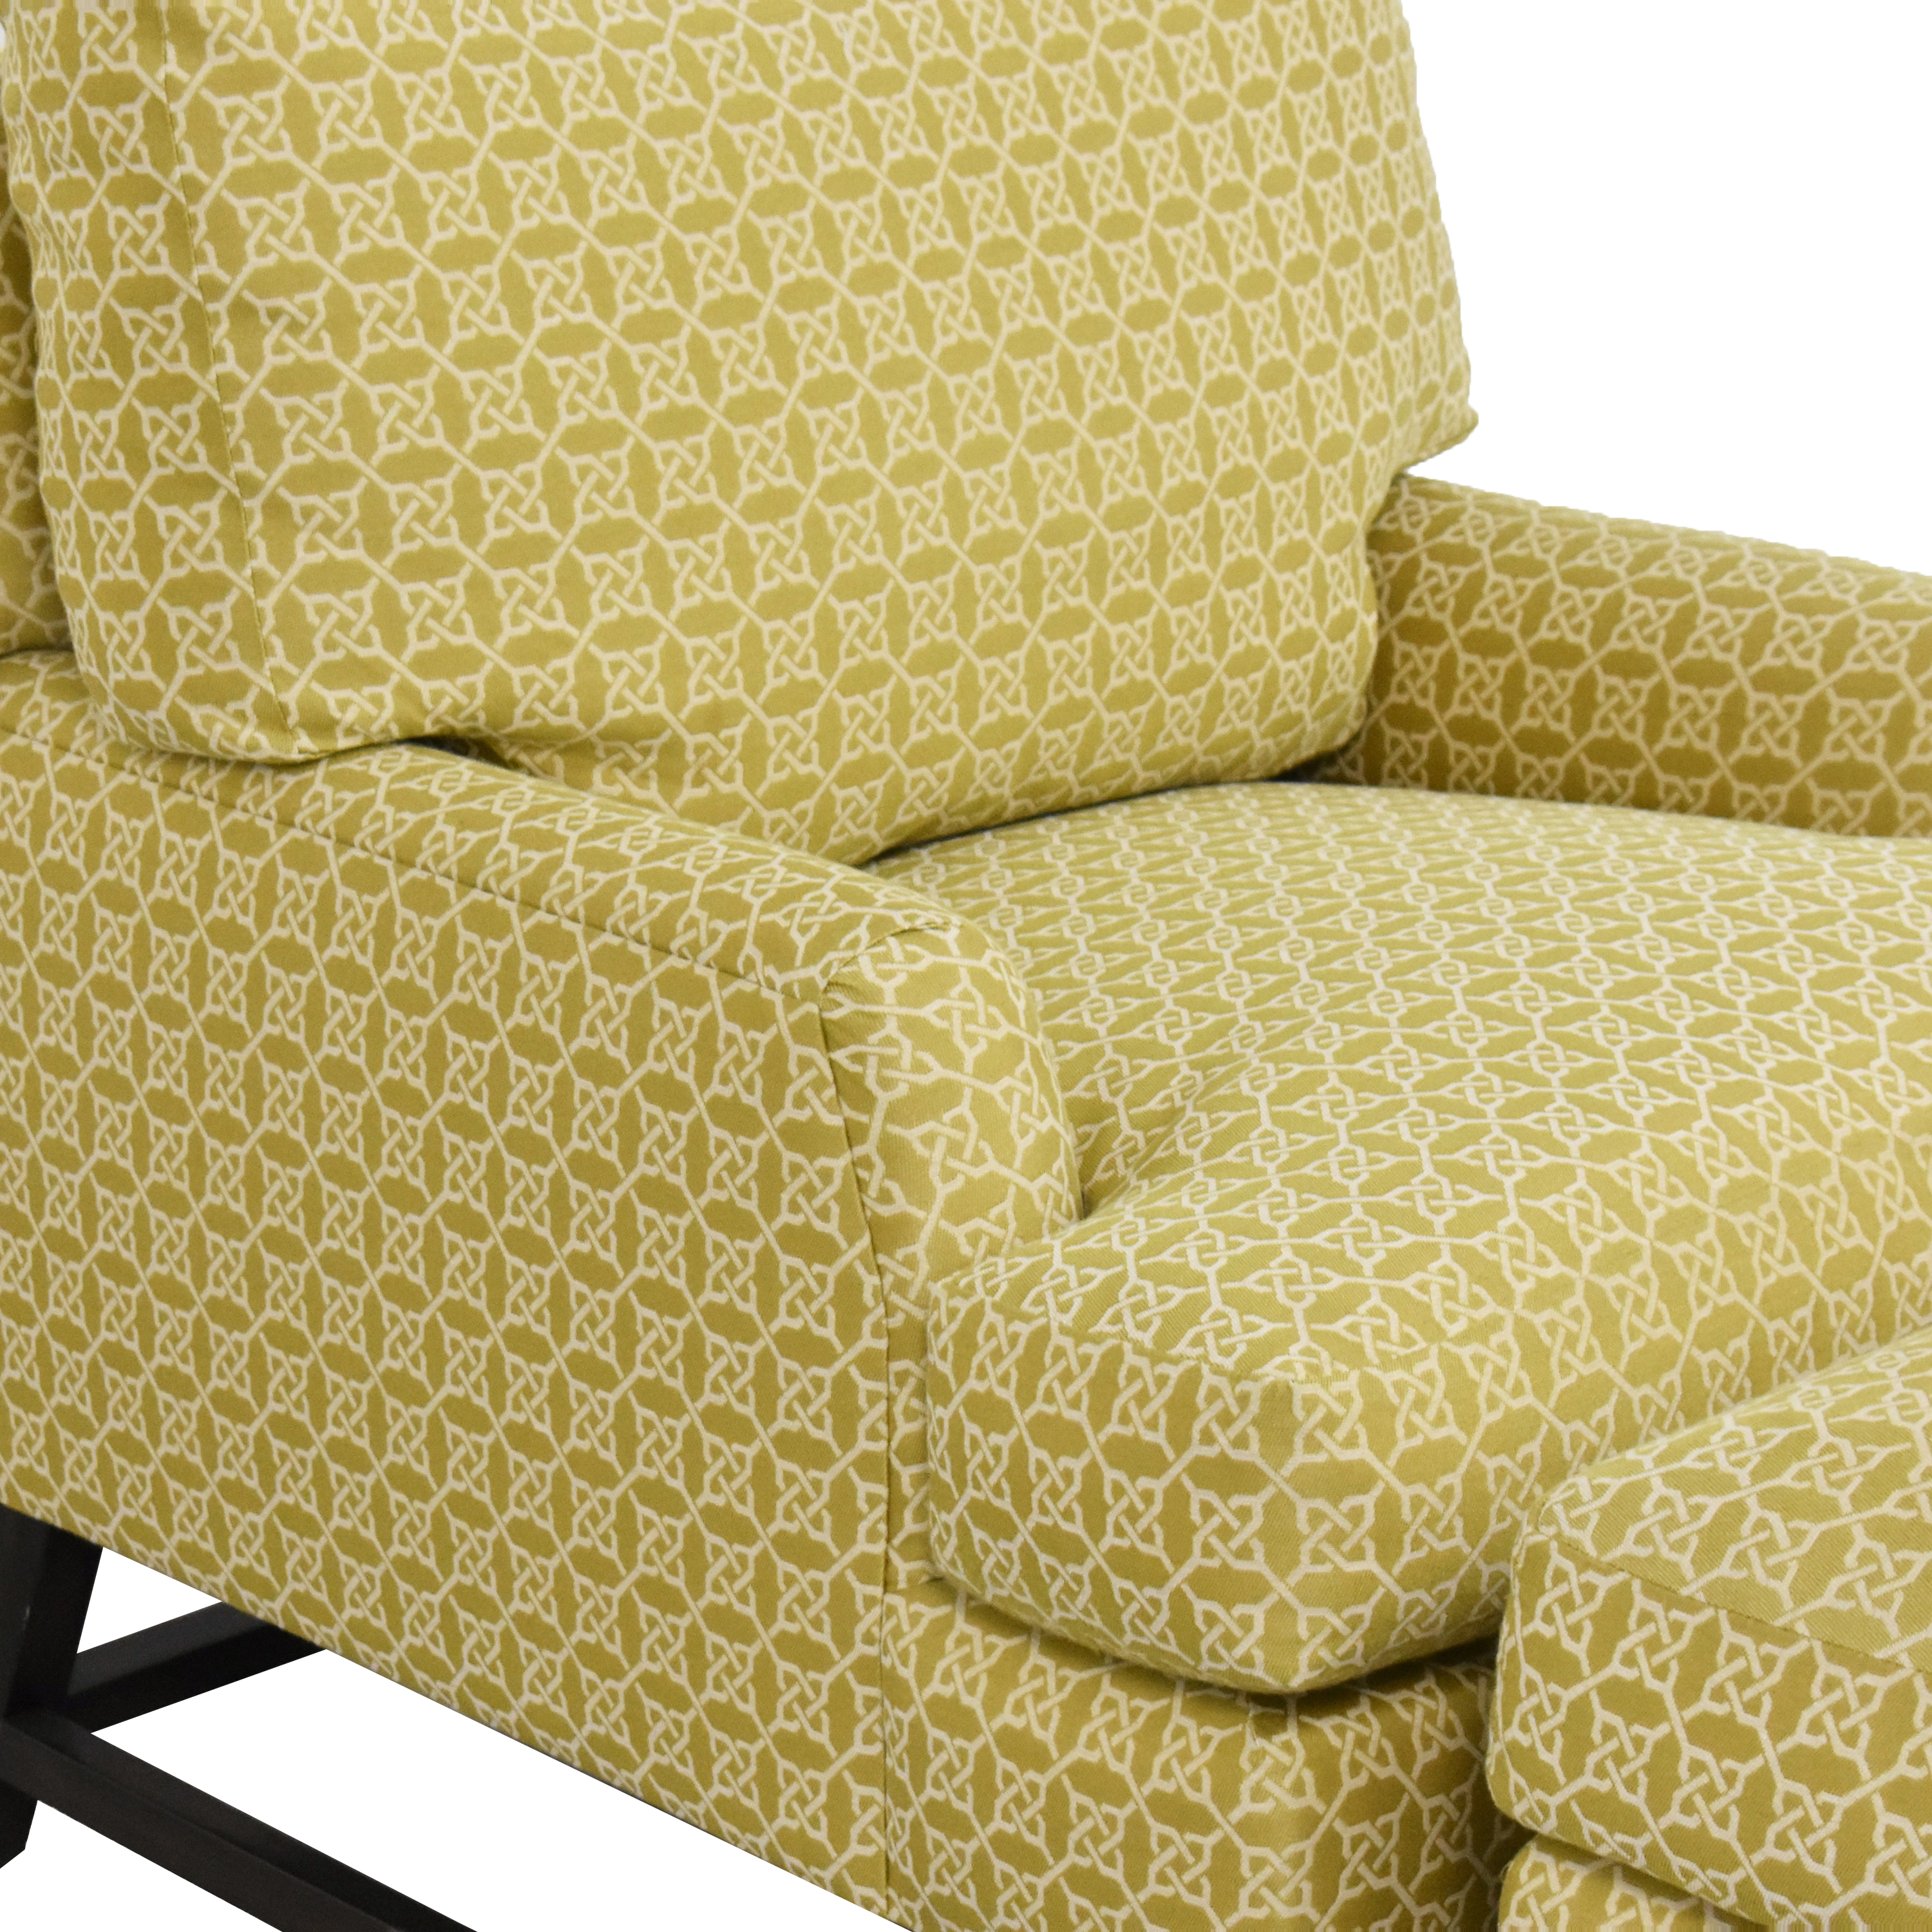 A Rudin No 681 Chair and Ottoman / Chairs